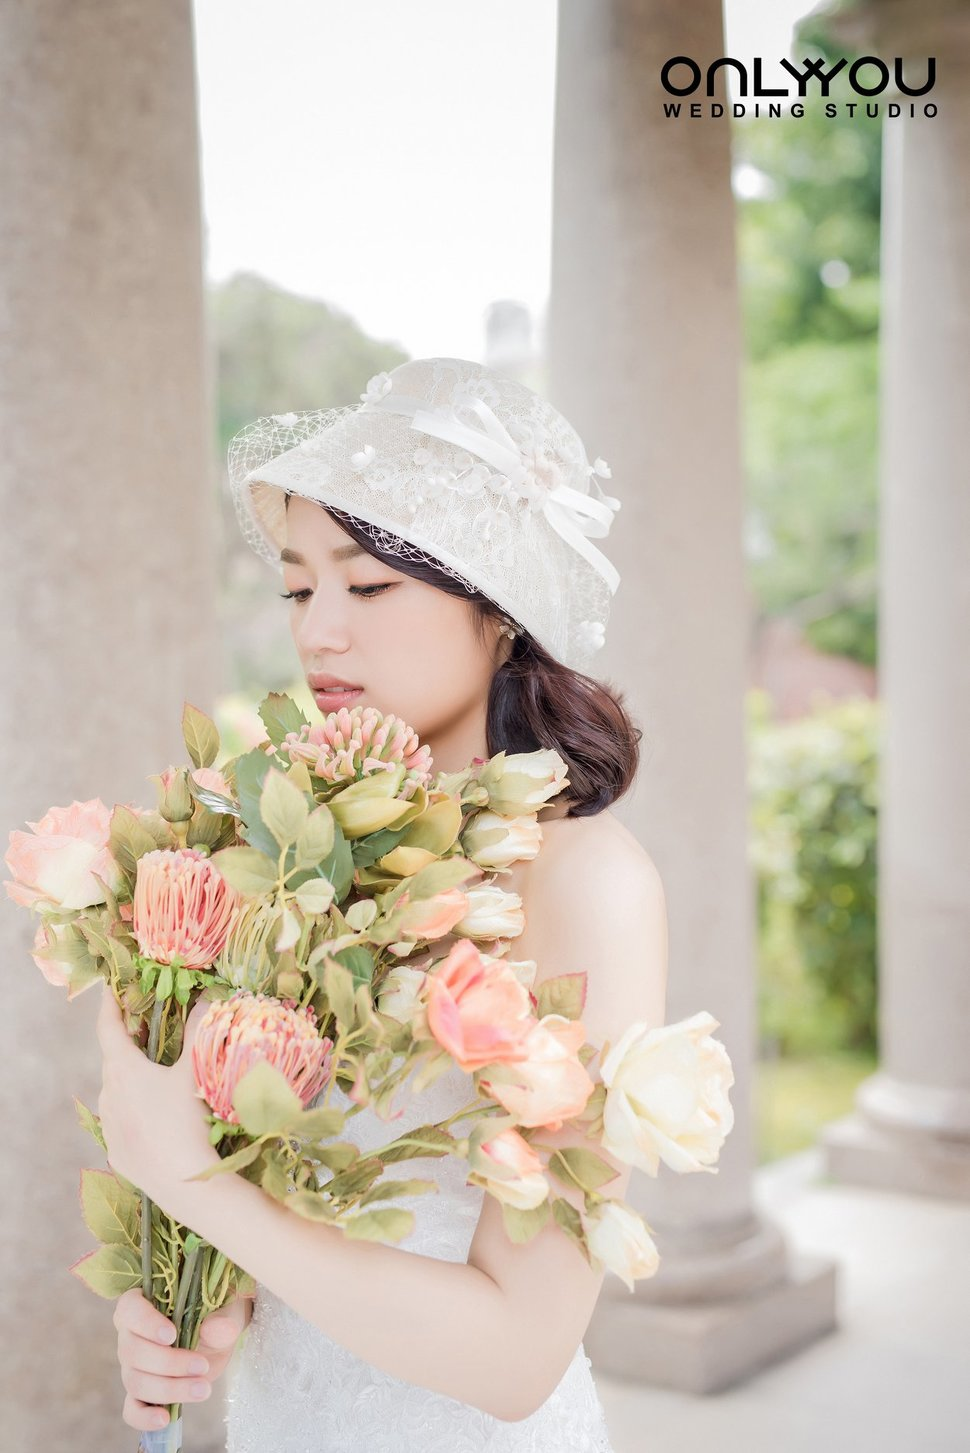 66075552_2236844606371173_2095916926319460352_o - ONLY YOU 唯你婚紗攝影《結婚吧》